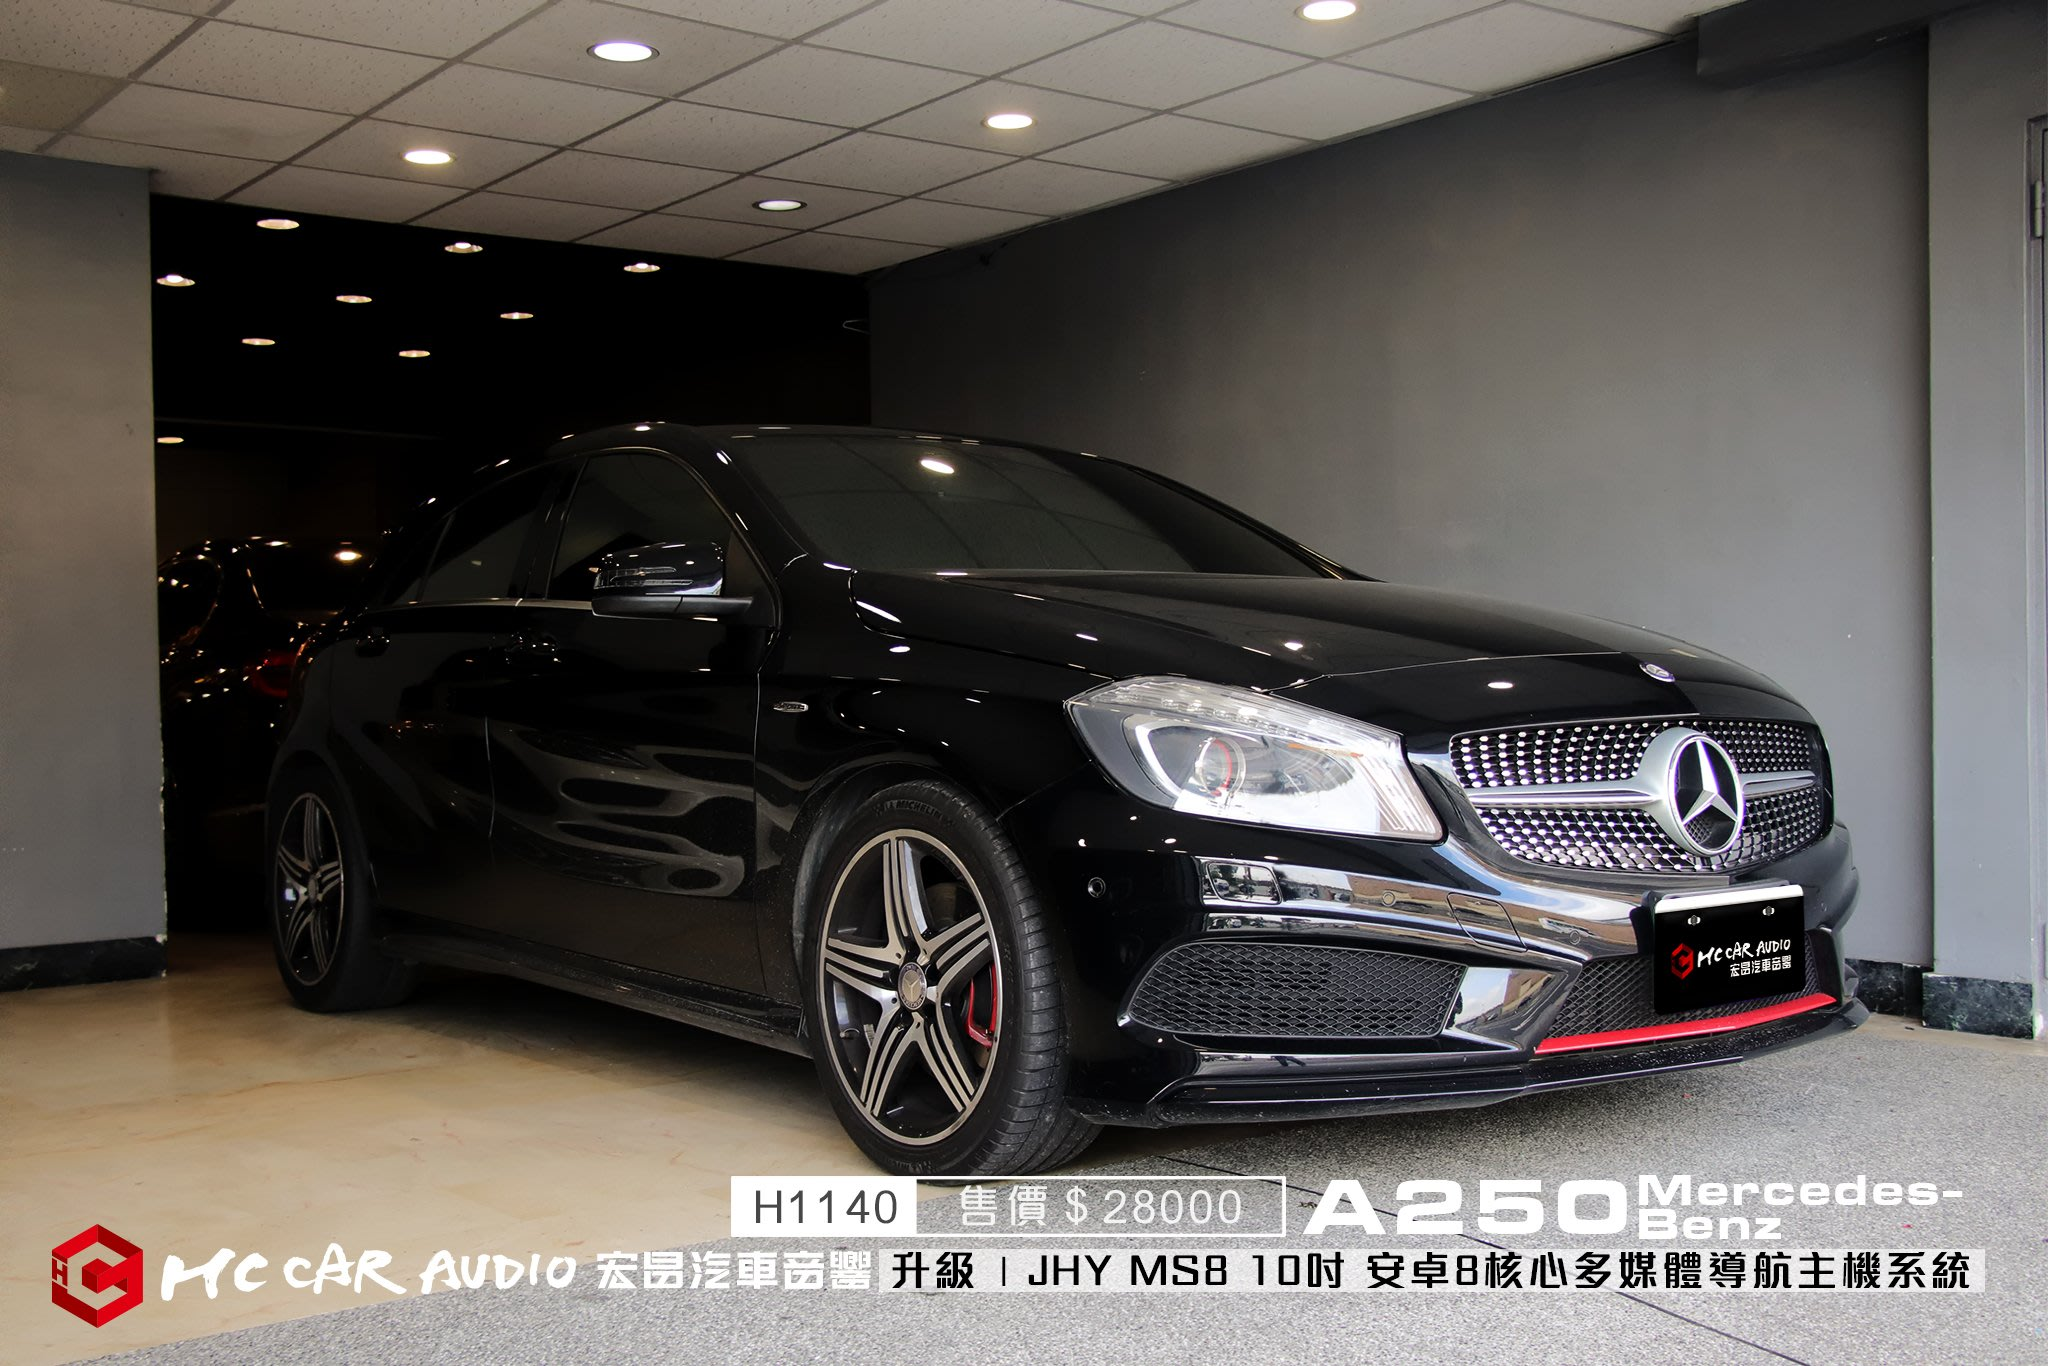 Mercedes-Benz A250 安裝JHY MS8 10.25吋 安卓8核心多媒體導航主機系統 H1140